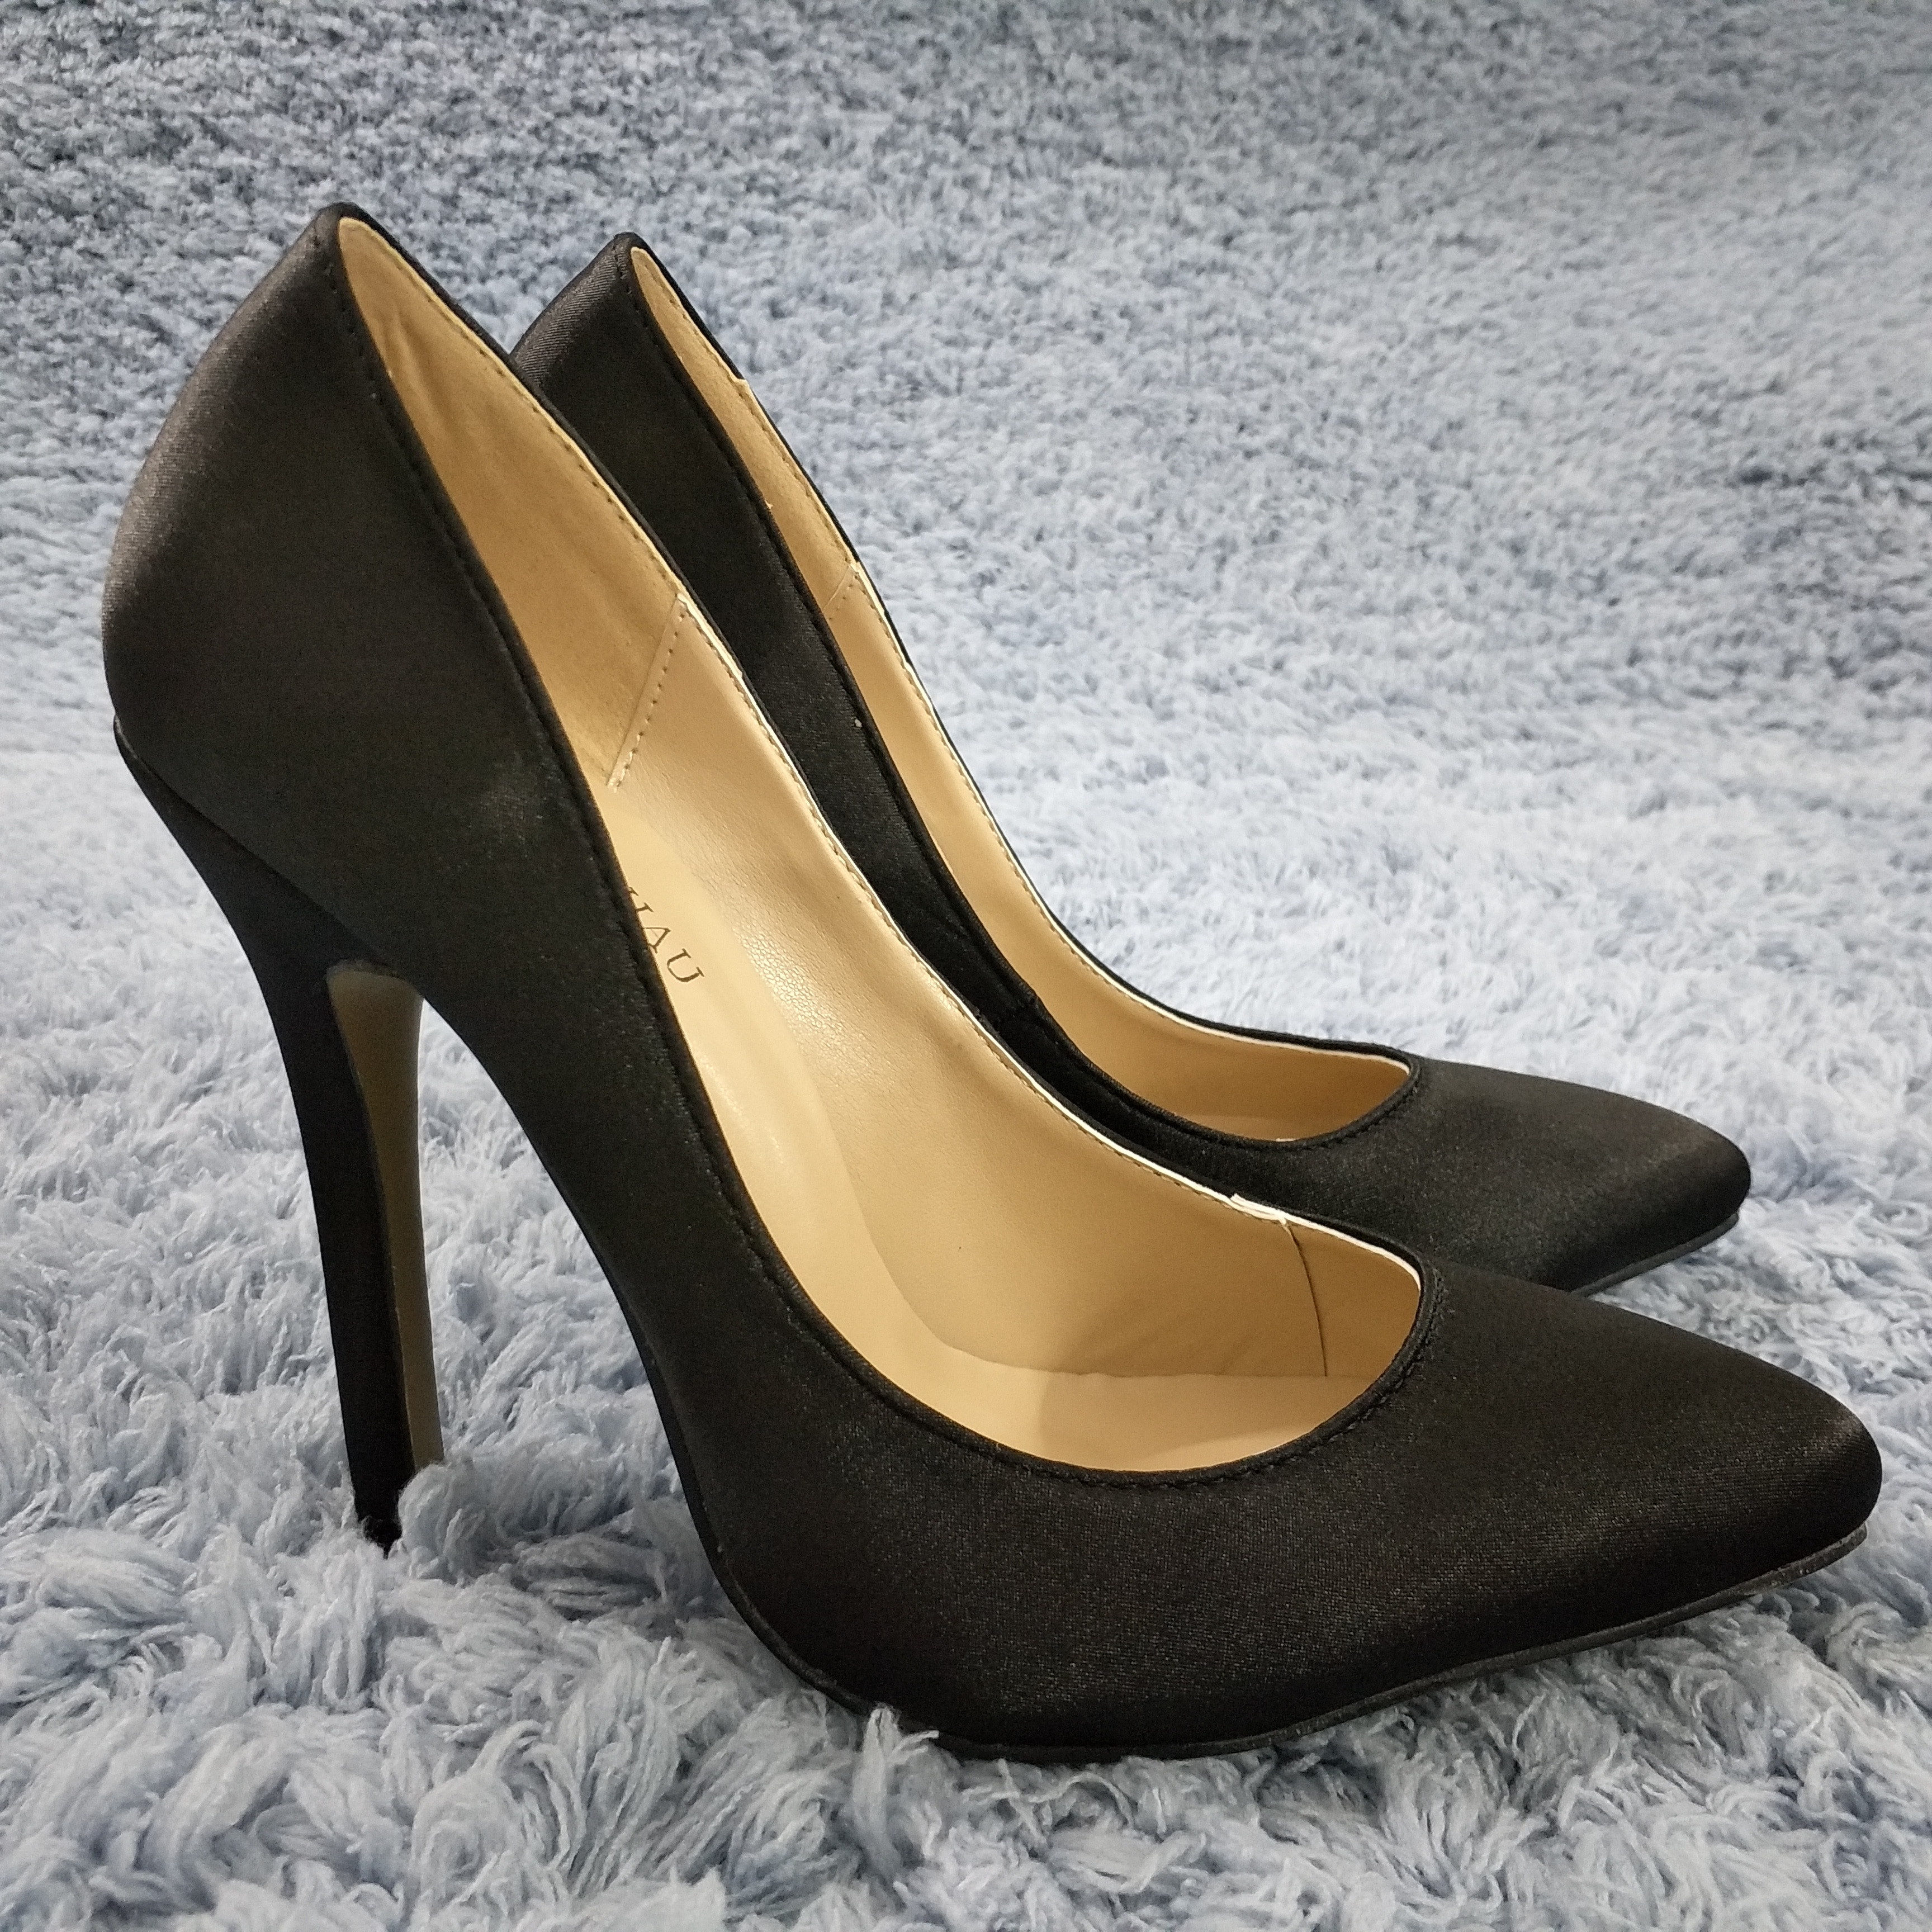 Women Stiletto Thin High Heel Pumps Sexy Pointed Toe Black Satin Party Work Office Career Lady Shoes 119-b10